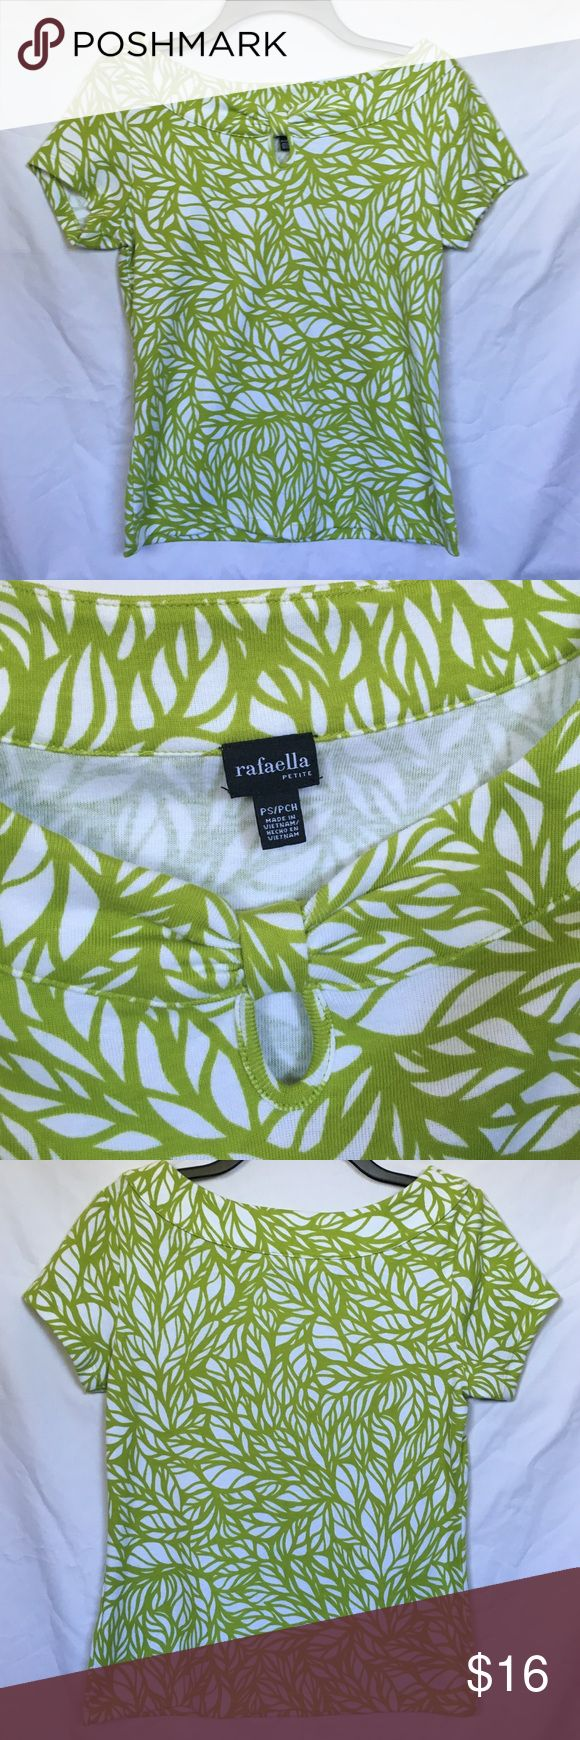 Rafaella petite short sleeve top Rafaella petite short sleeve top. Size PS/PCH. 100% cotton. The design looks like leaves to me. This is a very cute top for the summer. Super cute! Excellent condition!  Rafaella Tops Tees - Short Sleeve